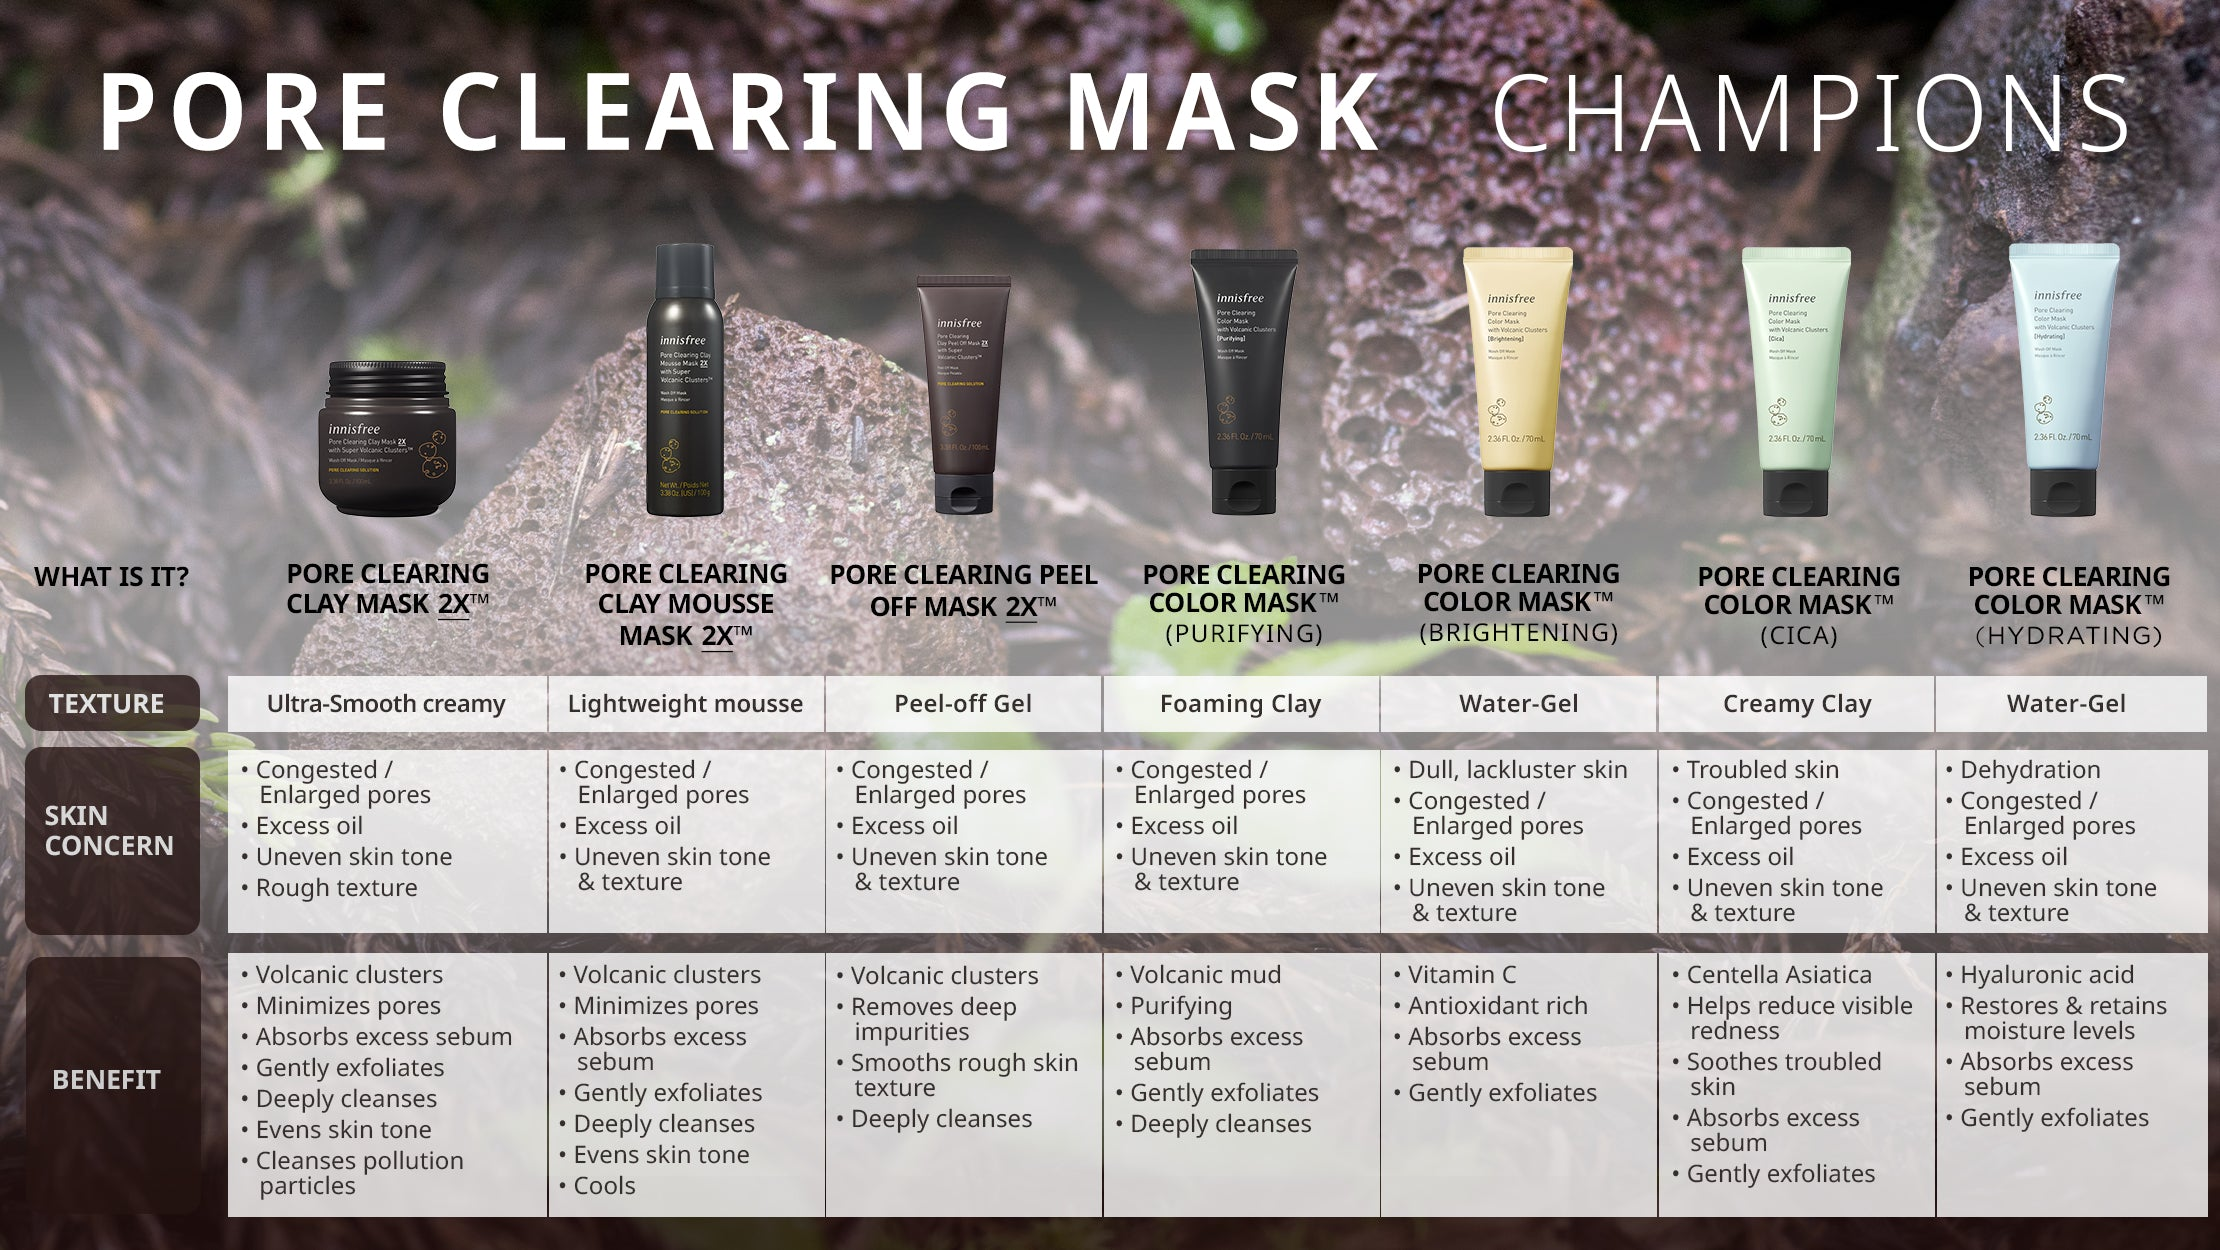 Pore Clearing Mask Champions Chart with Details